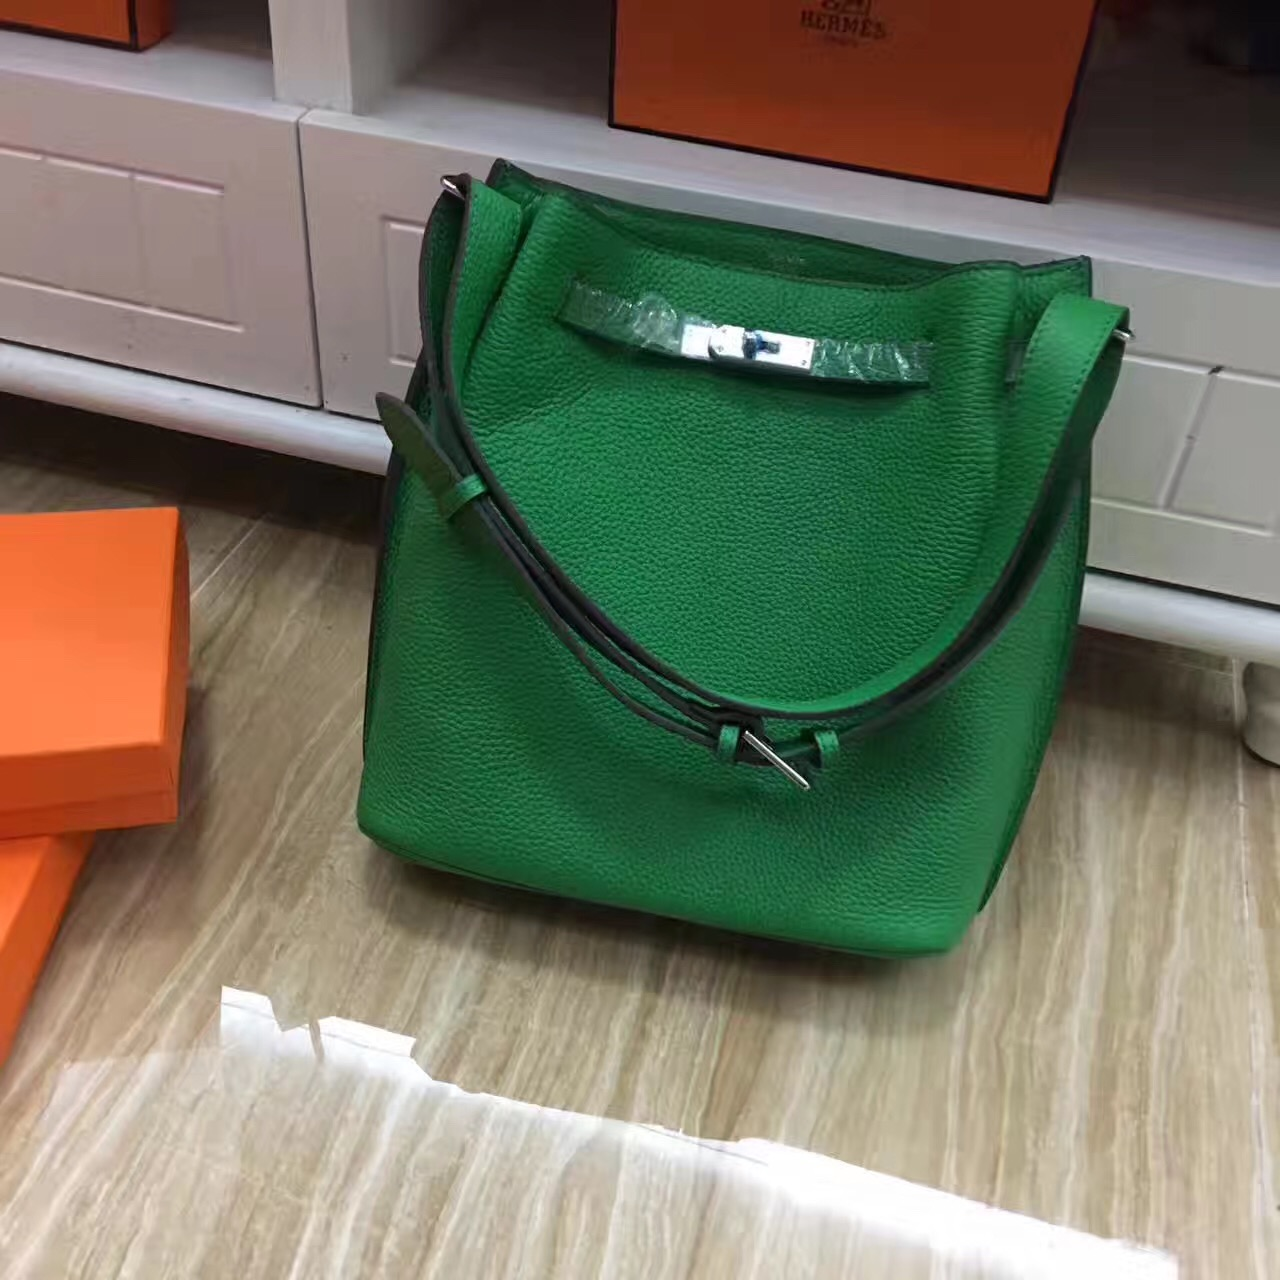 Hermes So Kelly 28cm Togo Leather Shoulder Bag Green Silver